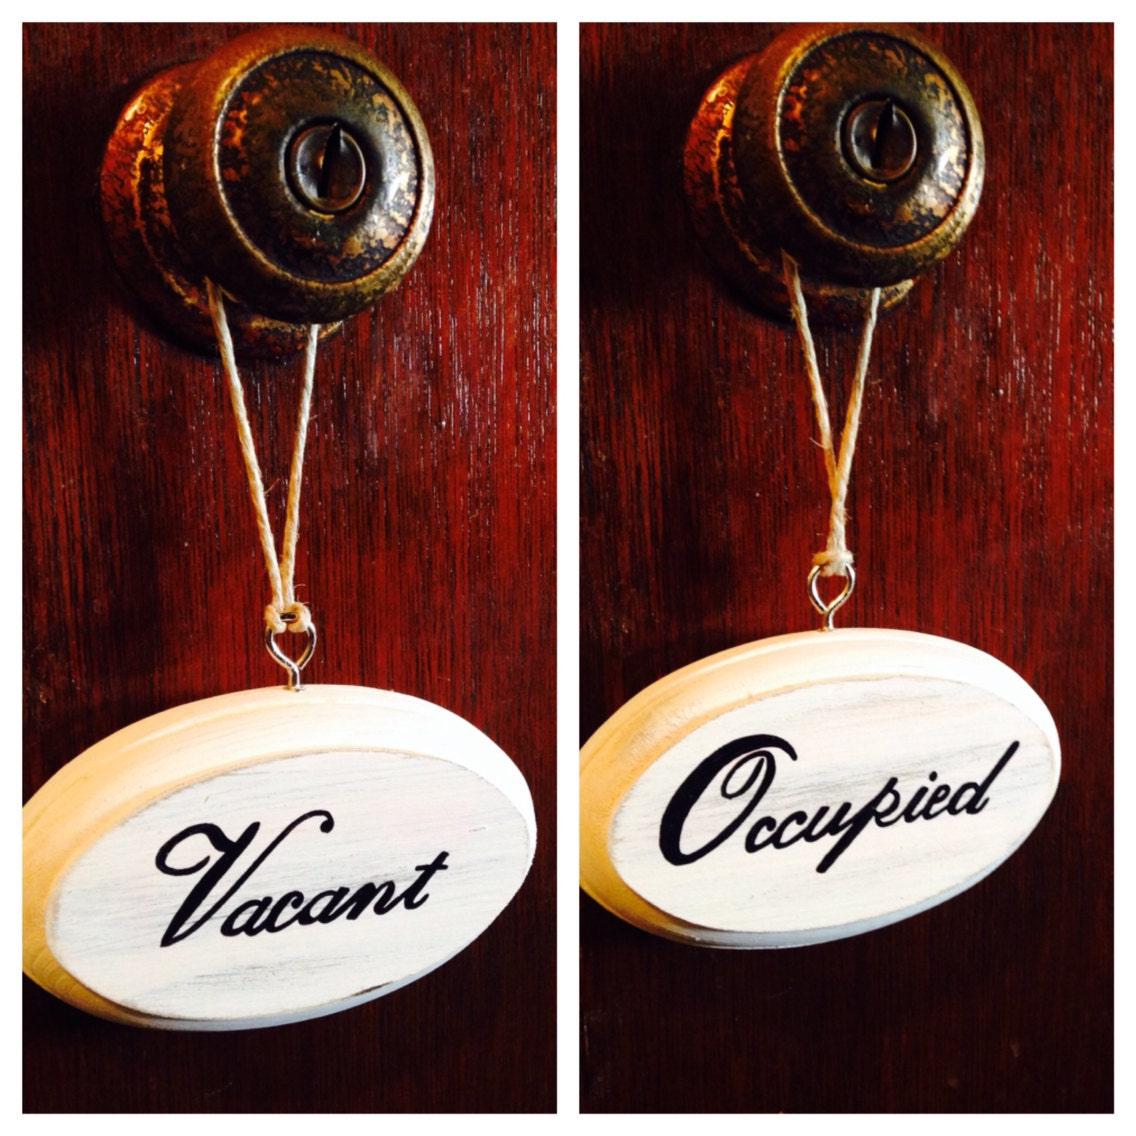 Vacant Occupied Double Sided Bathroom Sign White